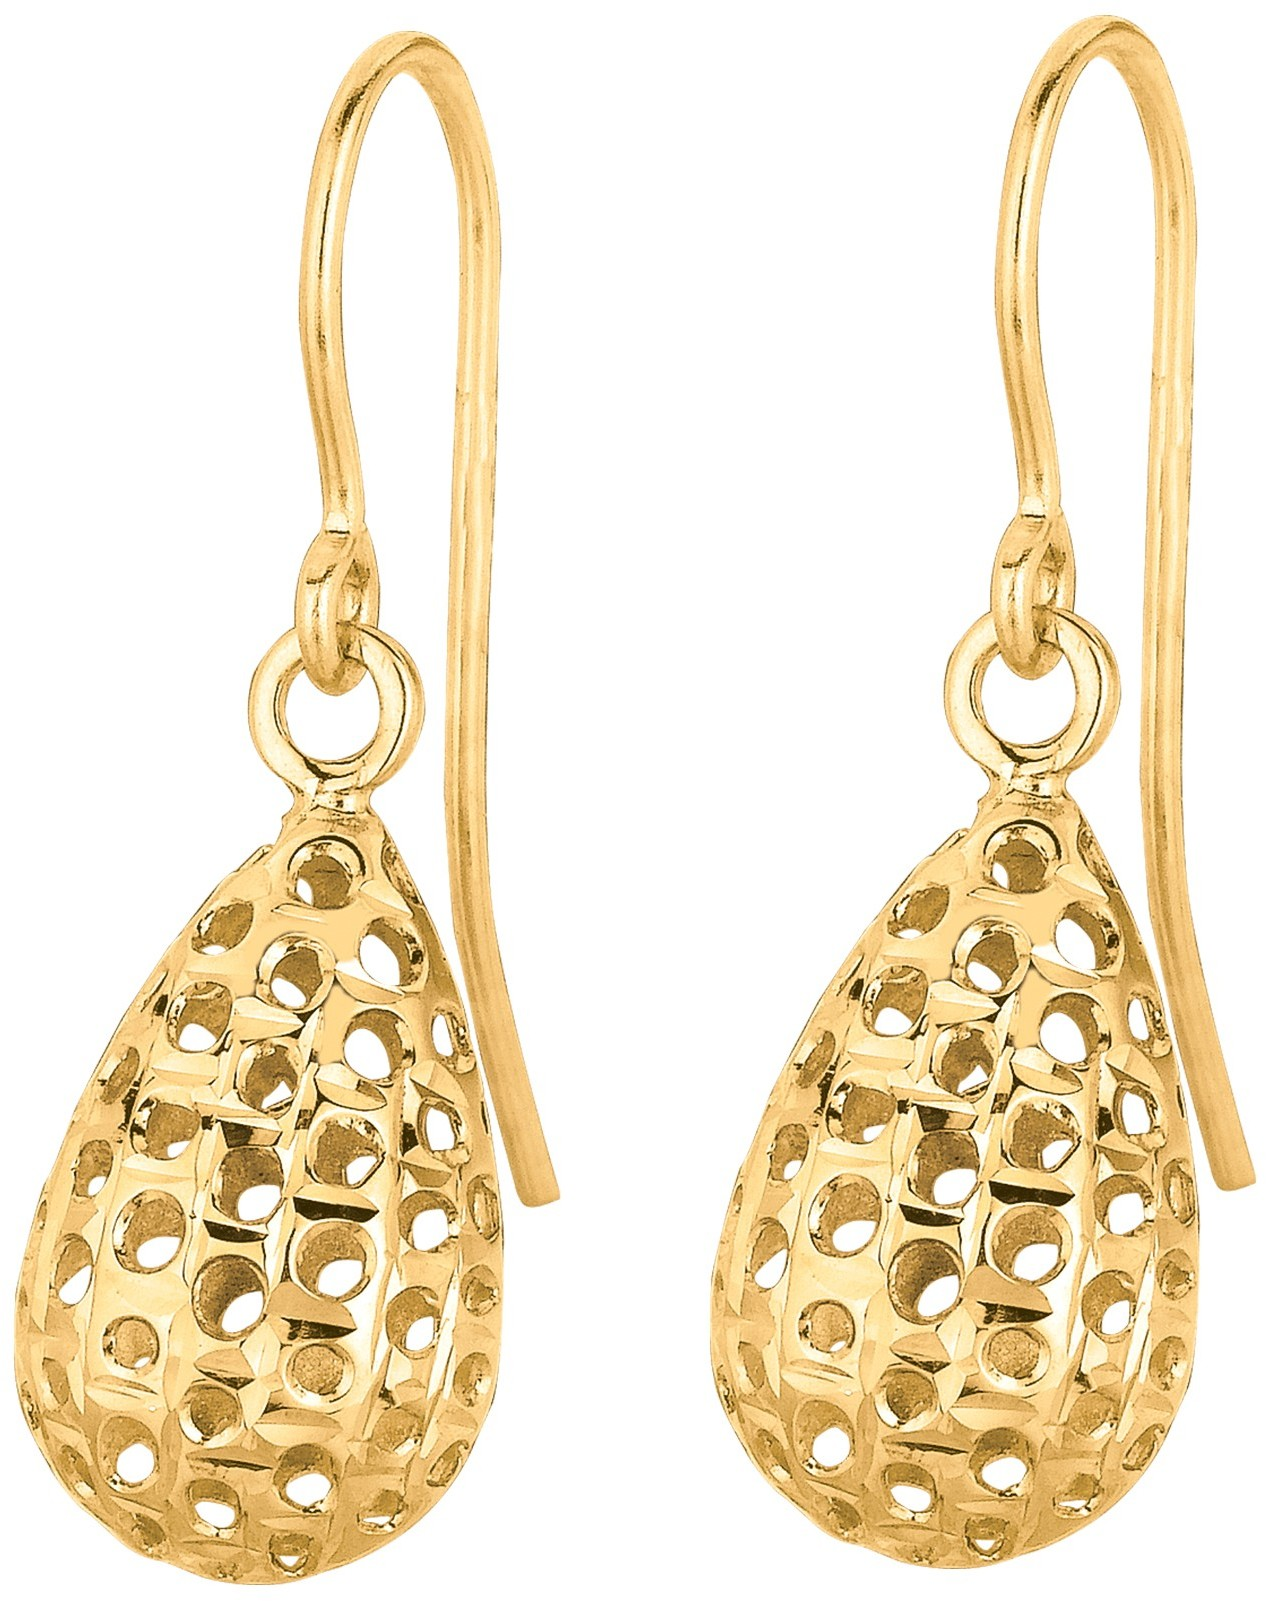 14K Yellow Gold Shiny Small Meshed Teardrop Shape Drop Earrings